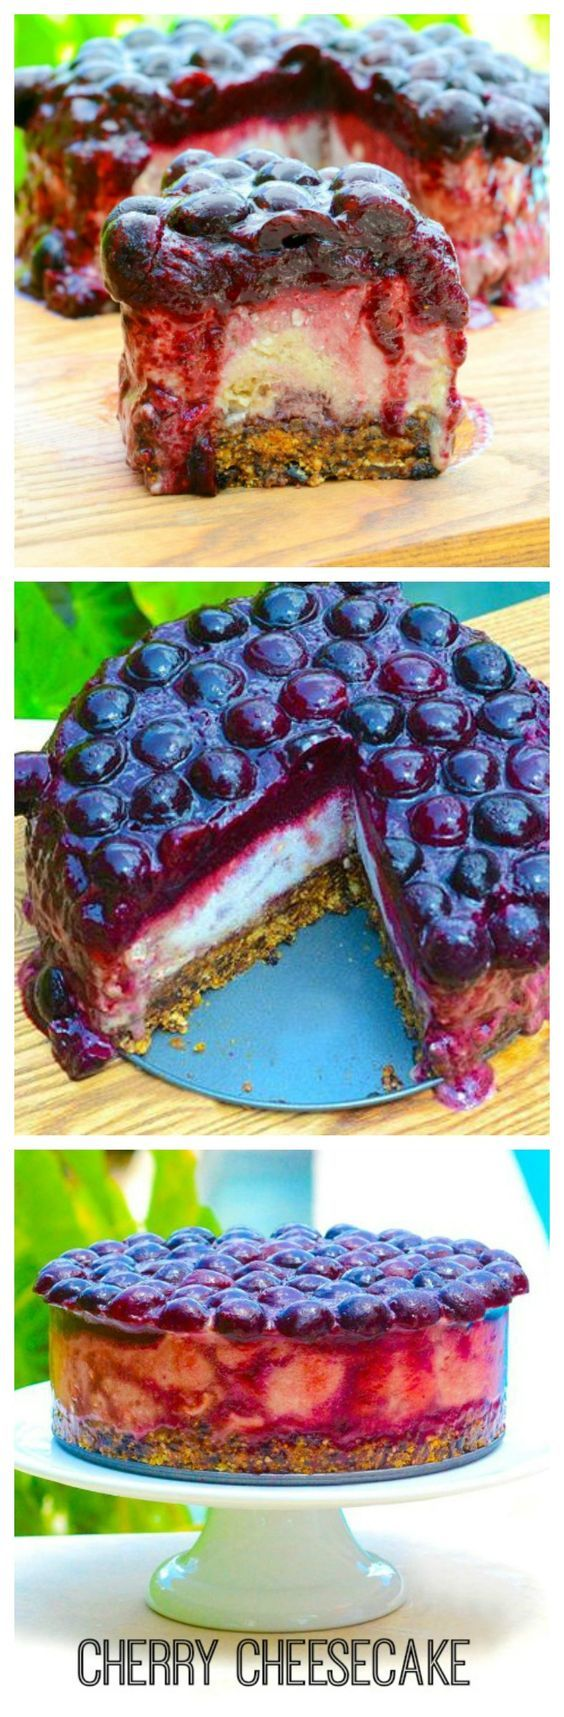 Raw Vegan Cherry Cheesecake - Low-fat  gluten free  dairy free  chemical free  and delicious!